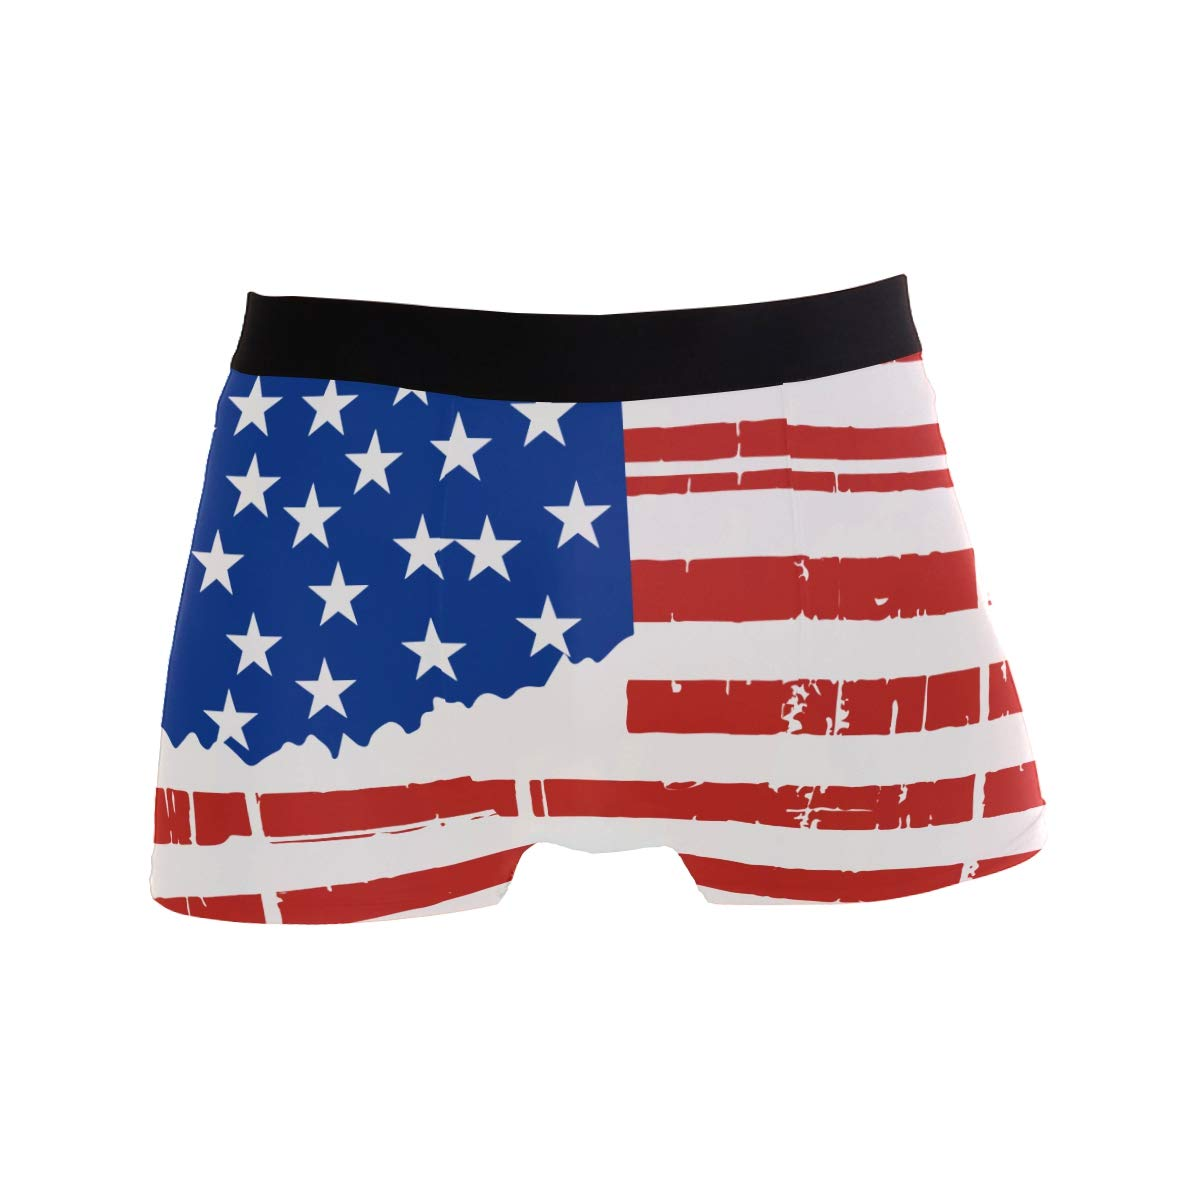 DongDongQiang Oklahoma State USA Flag Mens Boxer Briefs Underwear